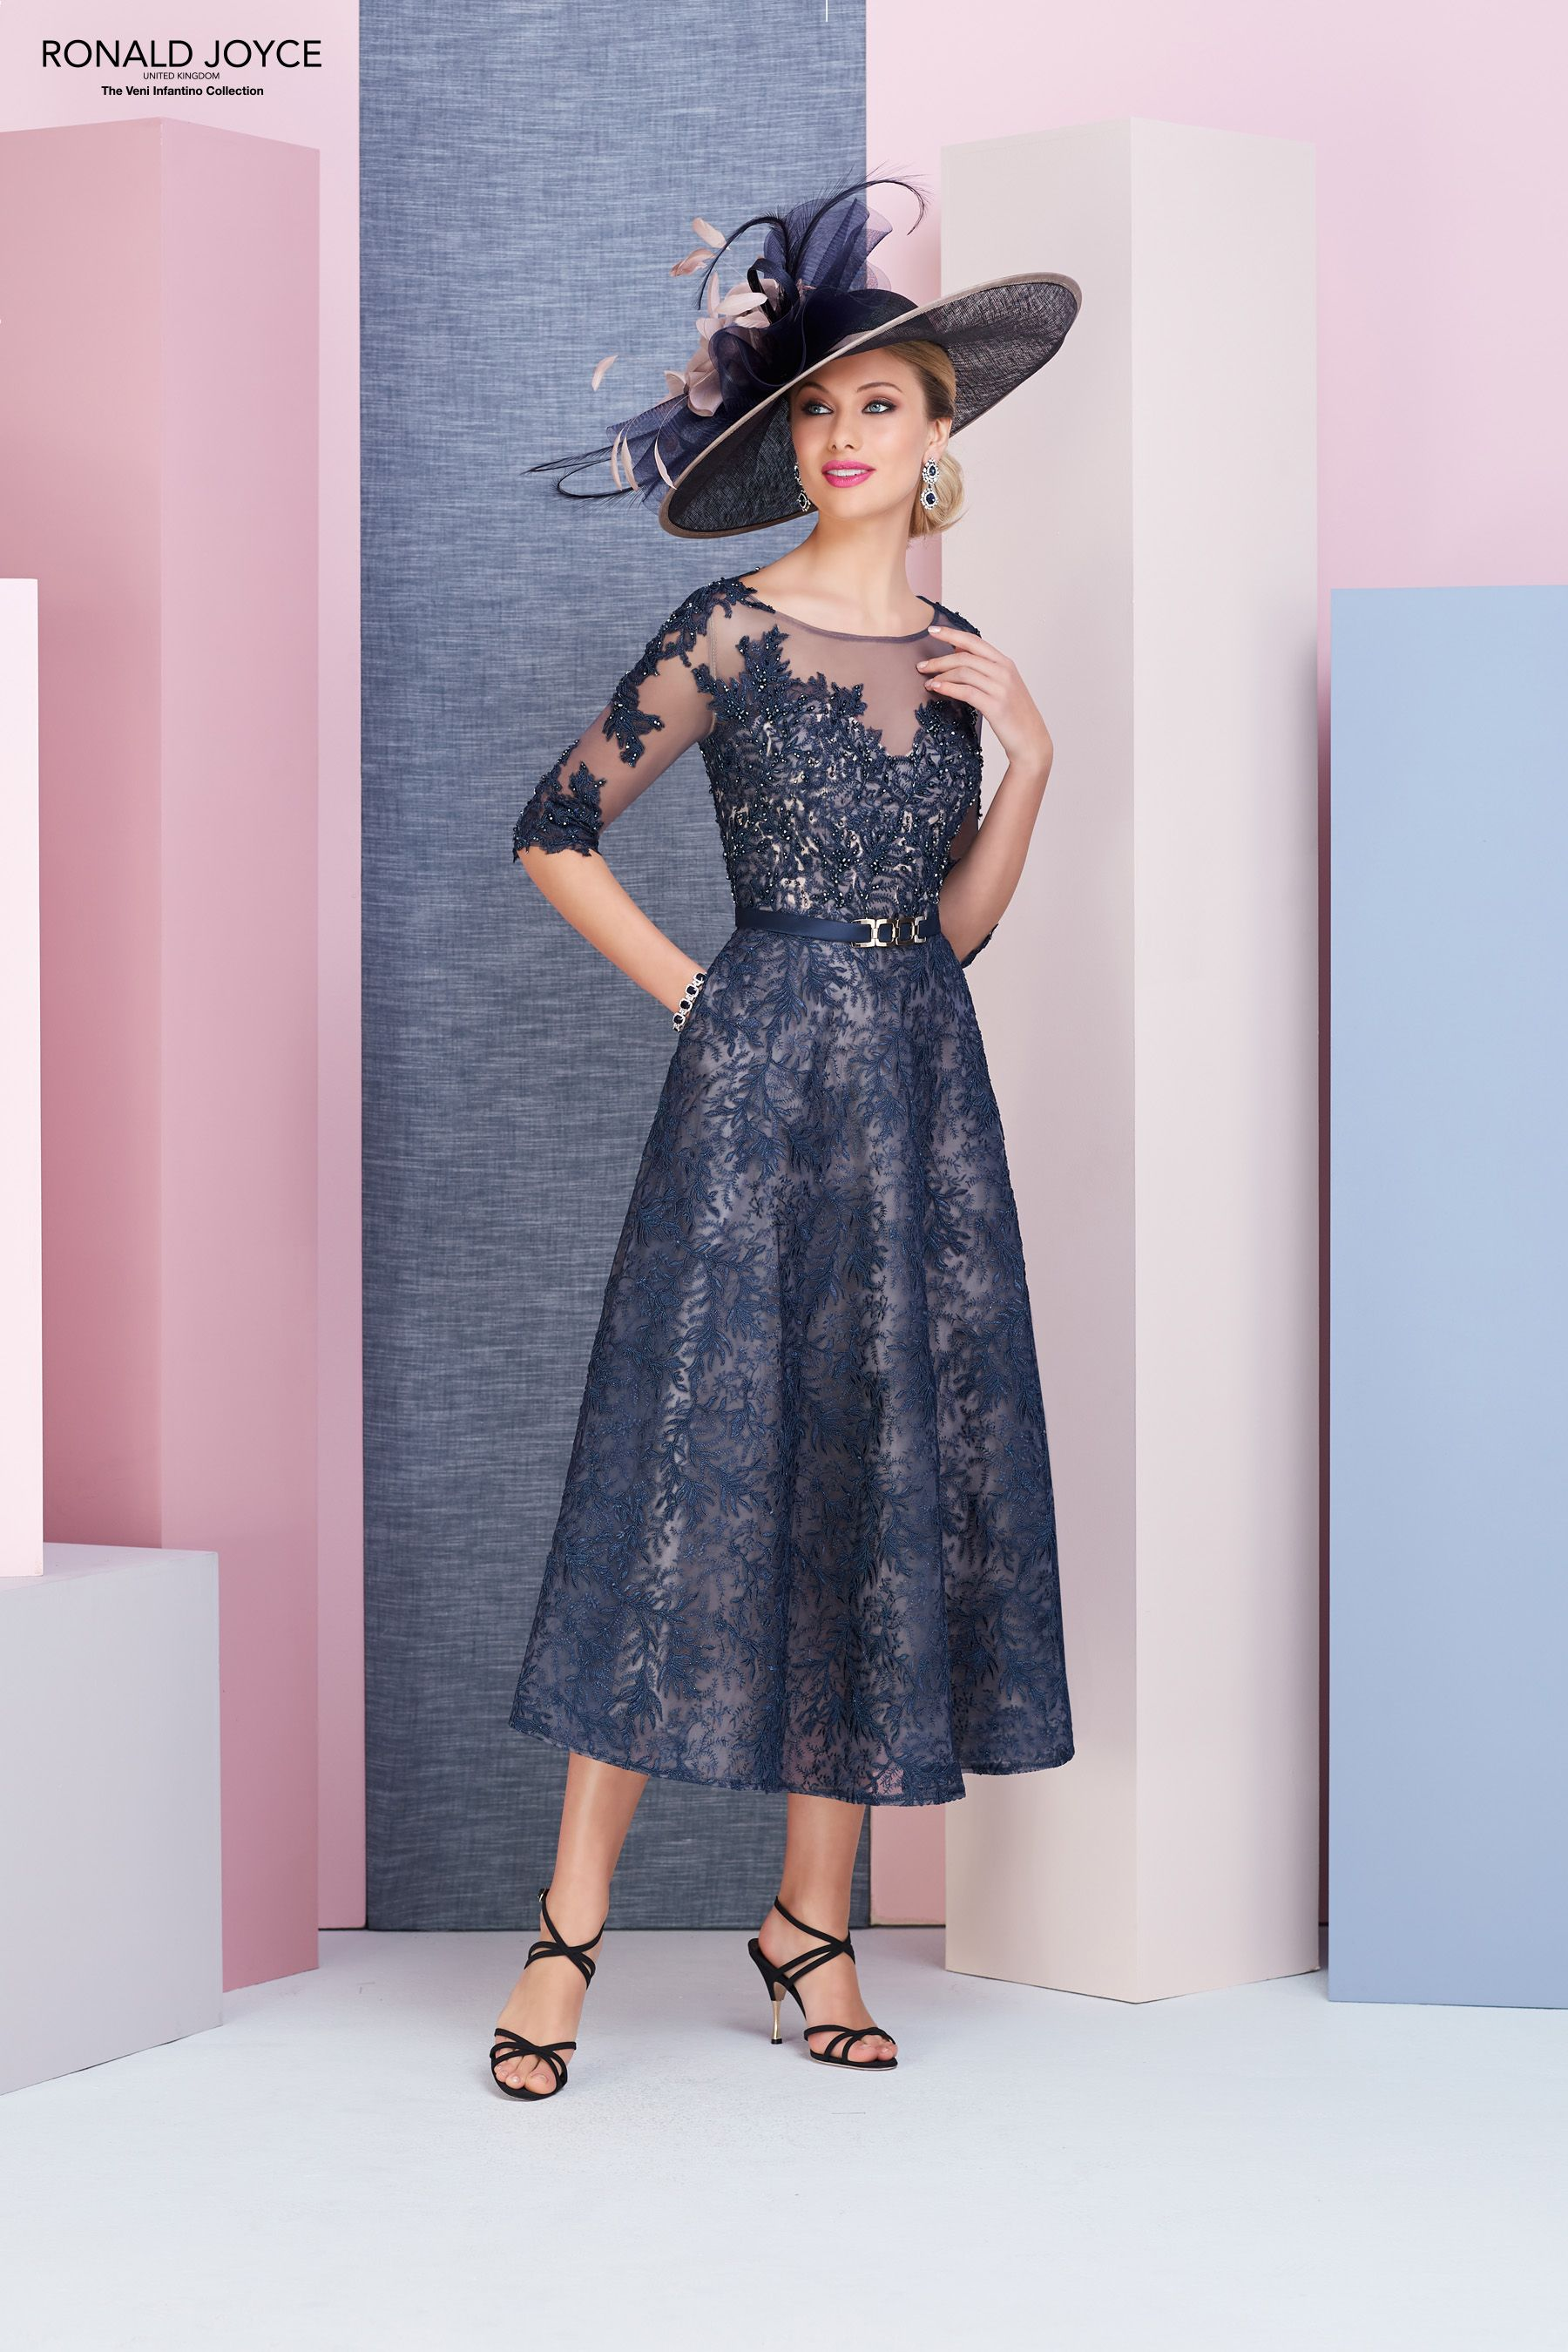 fb49c085d73c ... Joyce style 991371 Fabulous tea length wedding outfit in beautiful navy  lace over nude lining. Coming soon The perfect wedding outfit for the Mother  of ...